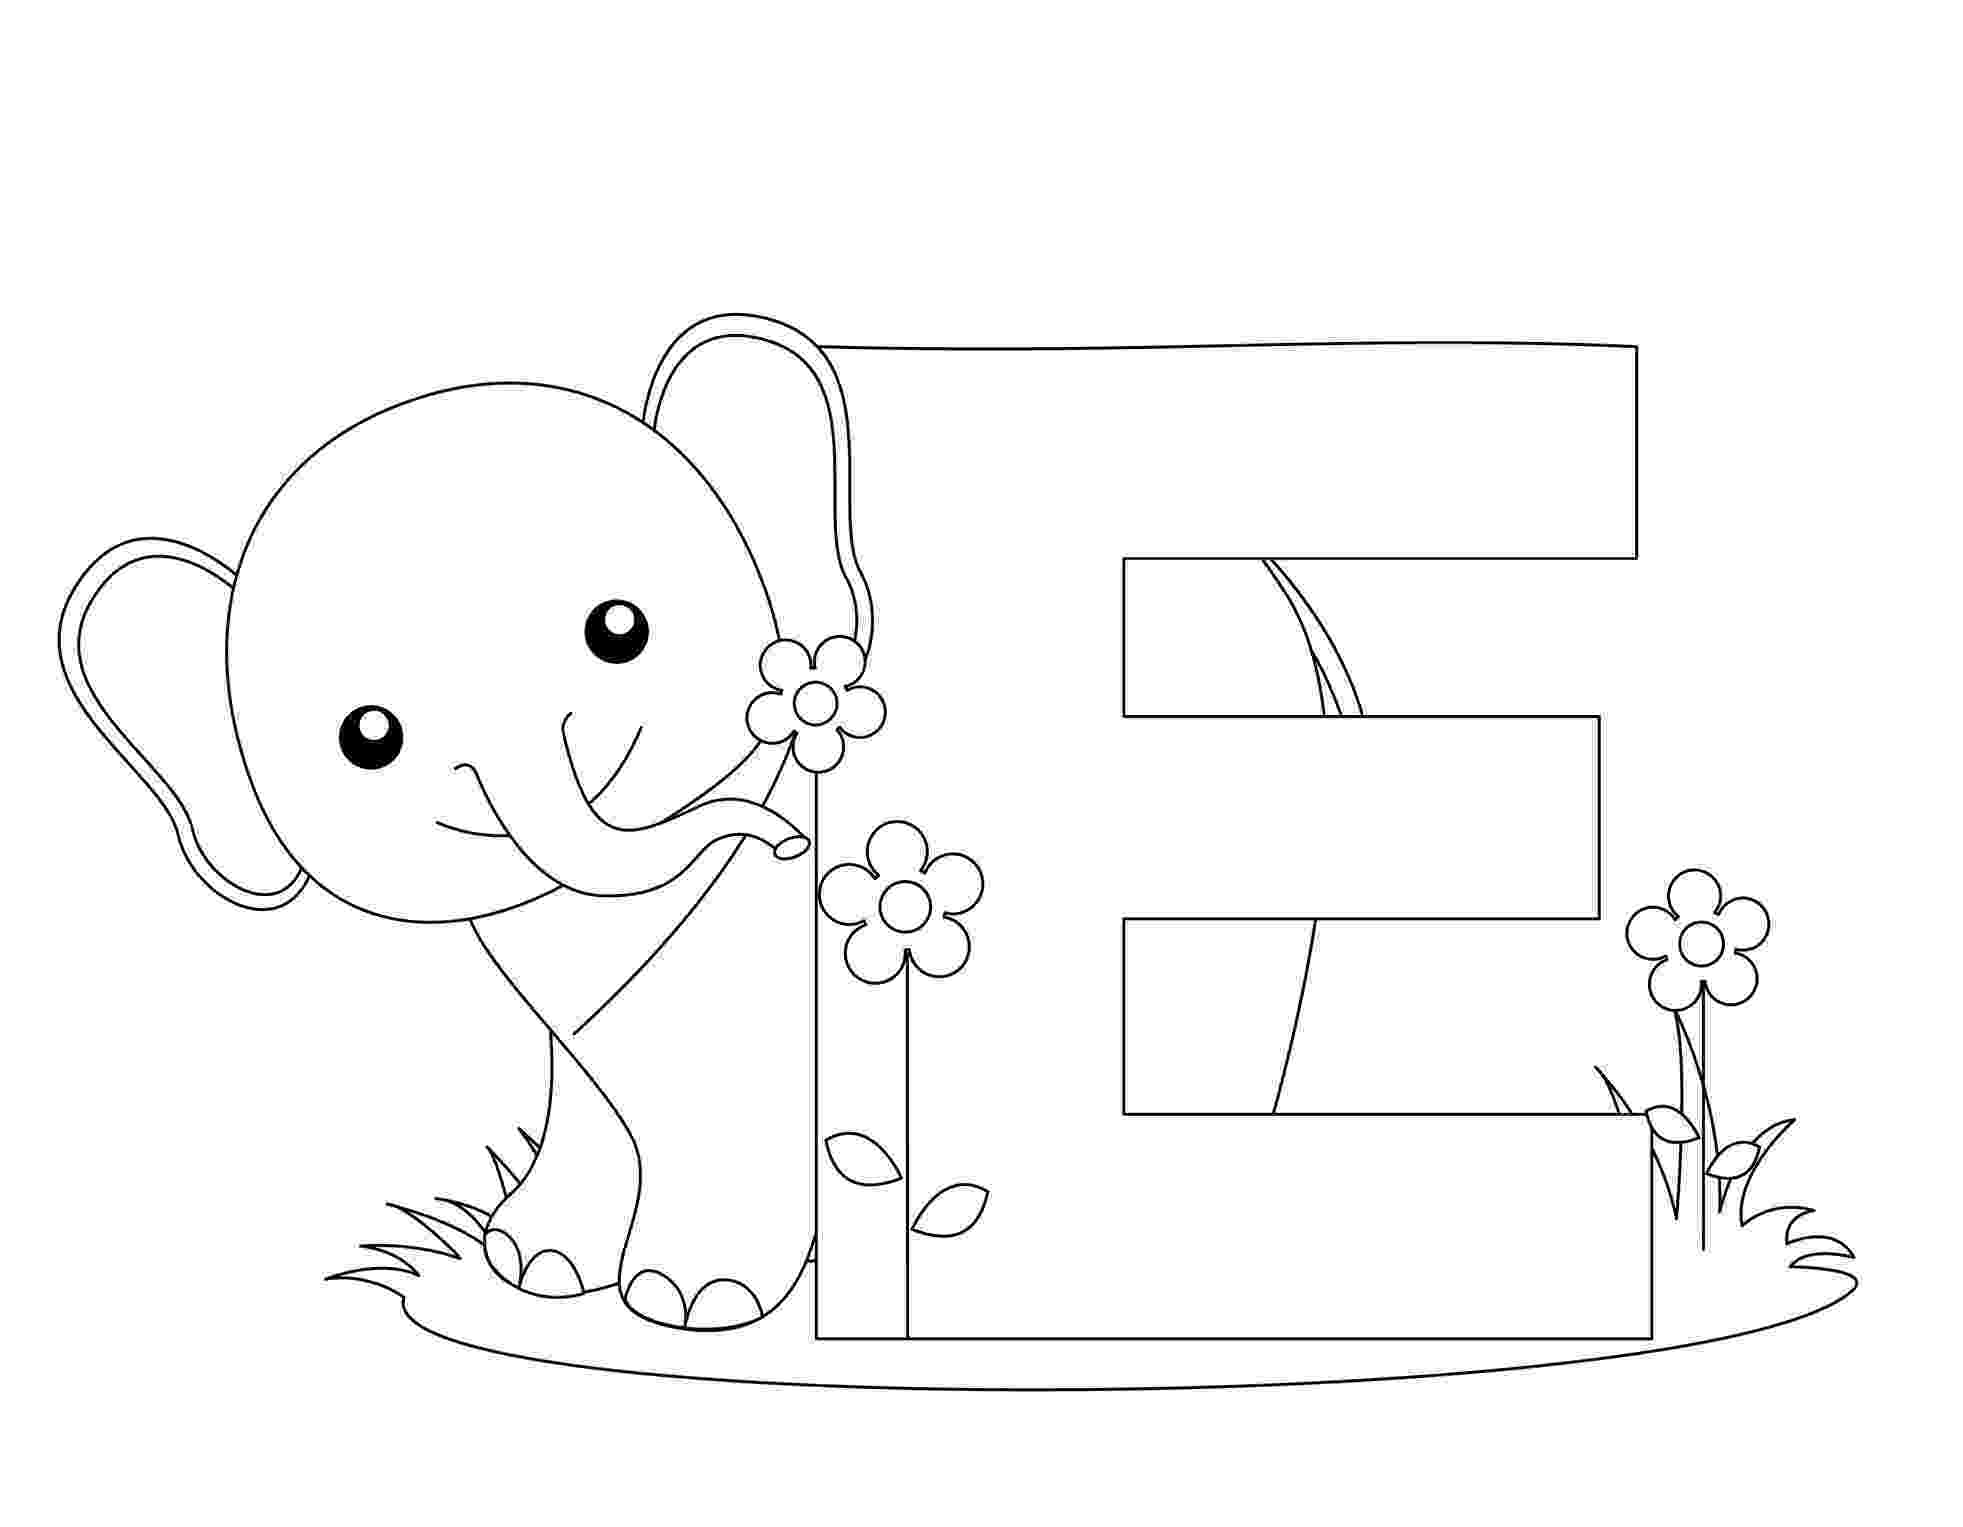 free alphabet coloring pages free printable alphabet coloring pages for kids best coloring pages free alphabet